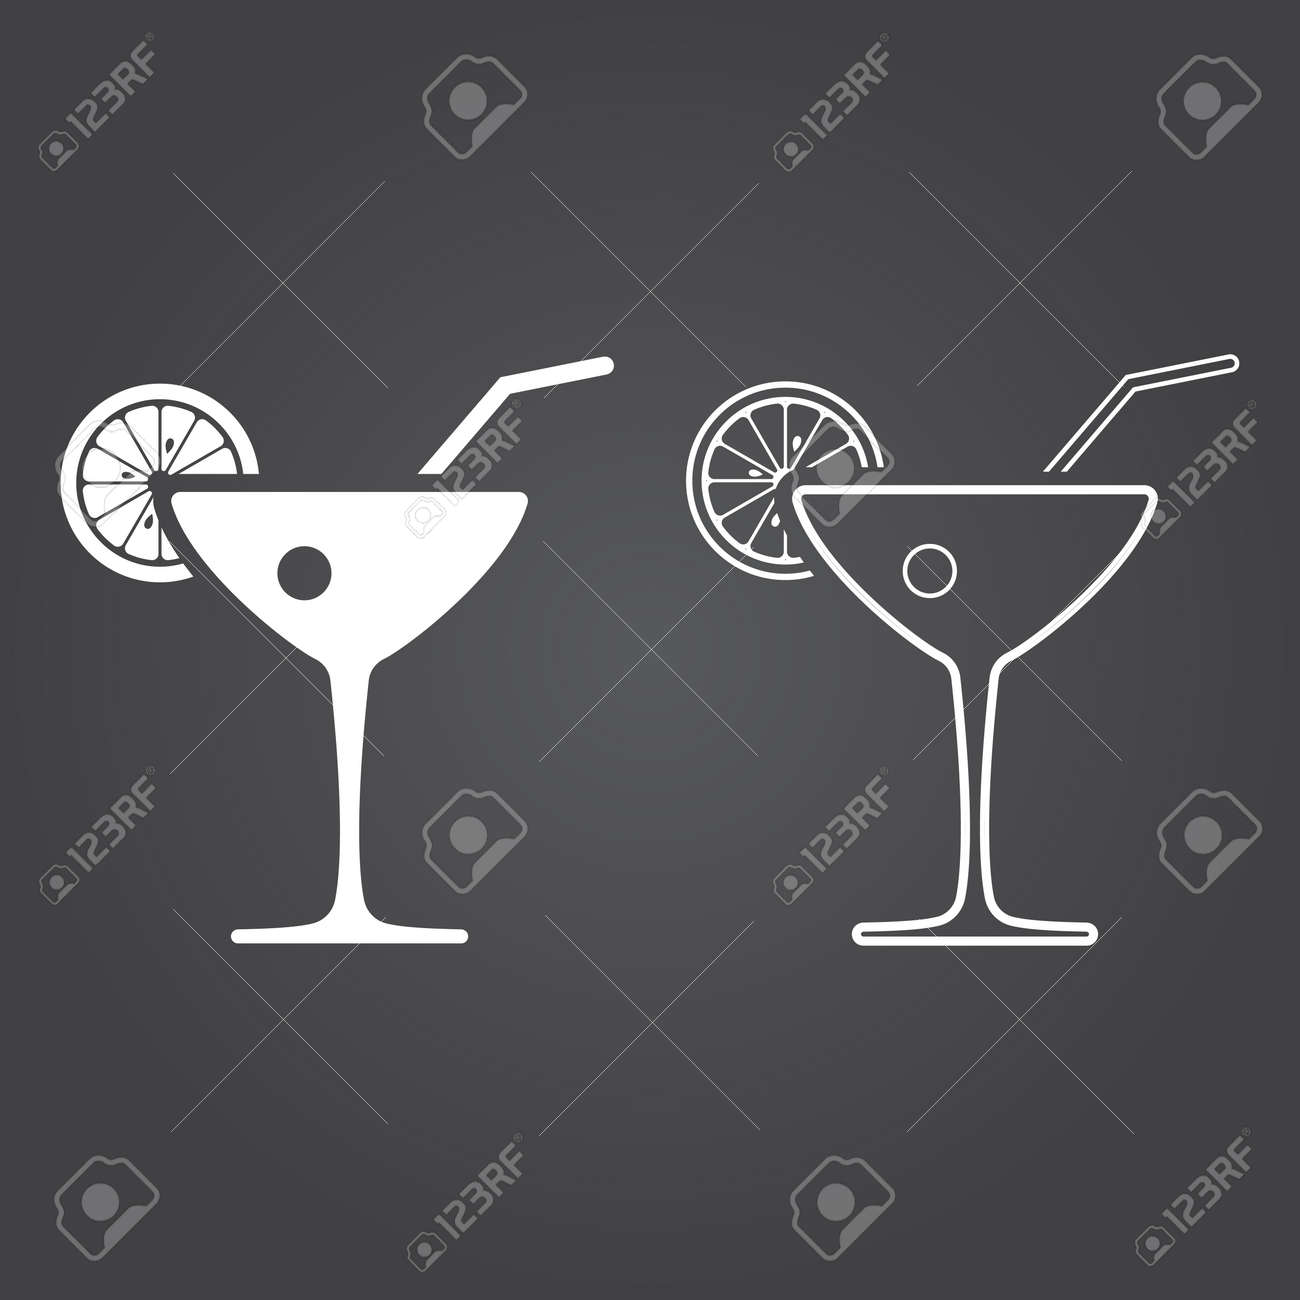 cocktail icon  Solid and Outline Versions  White icons on a dark